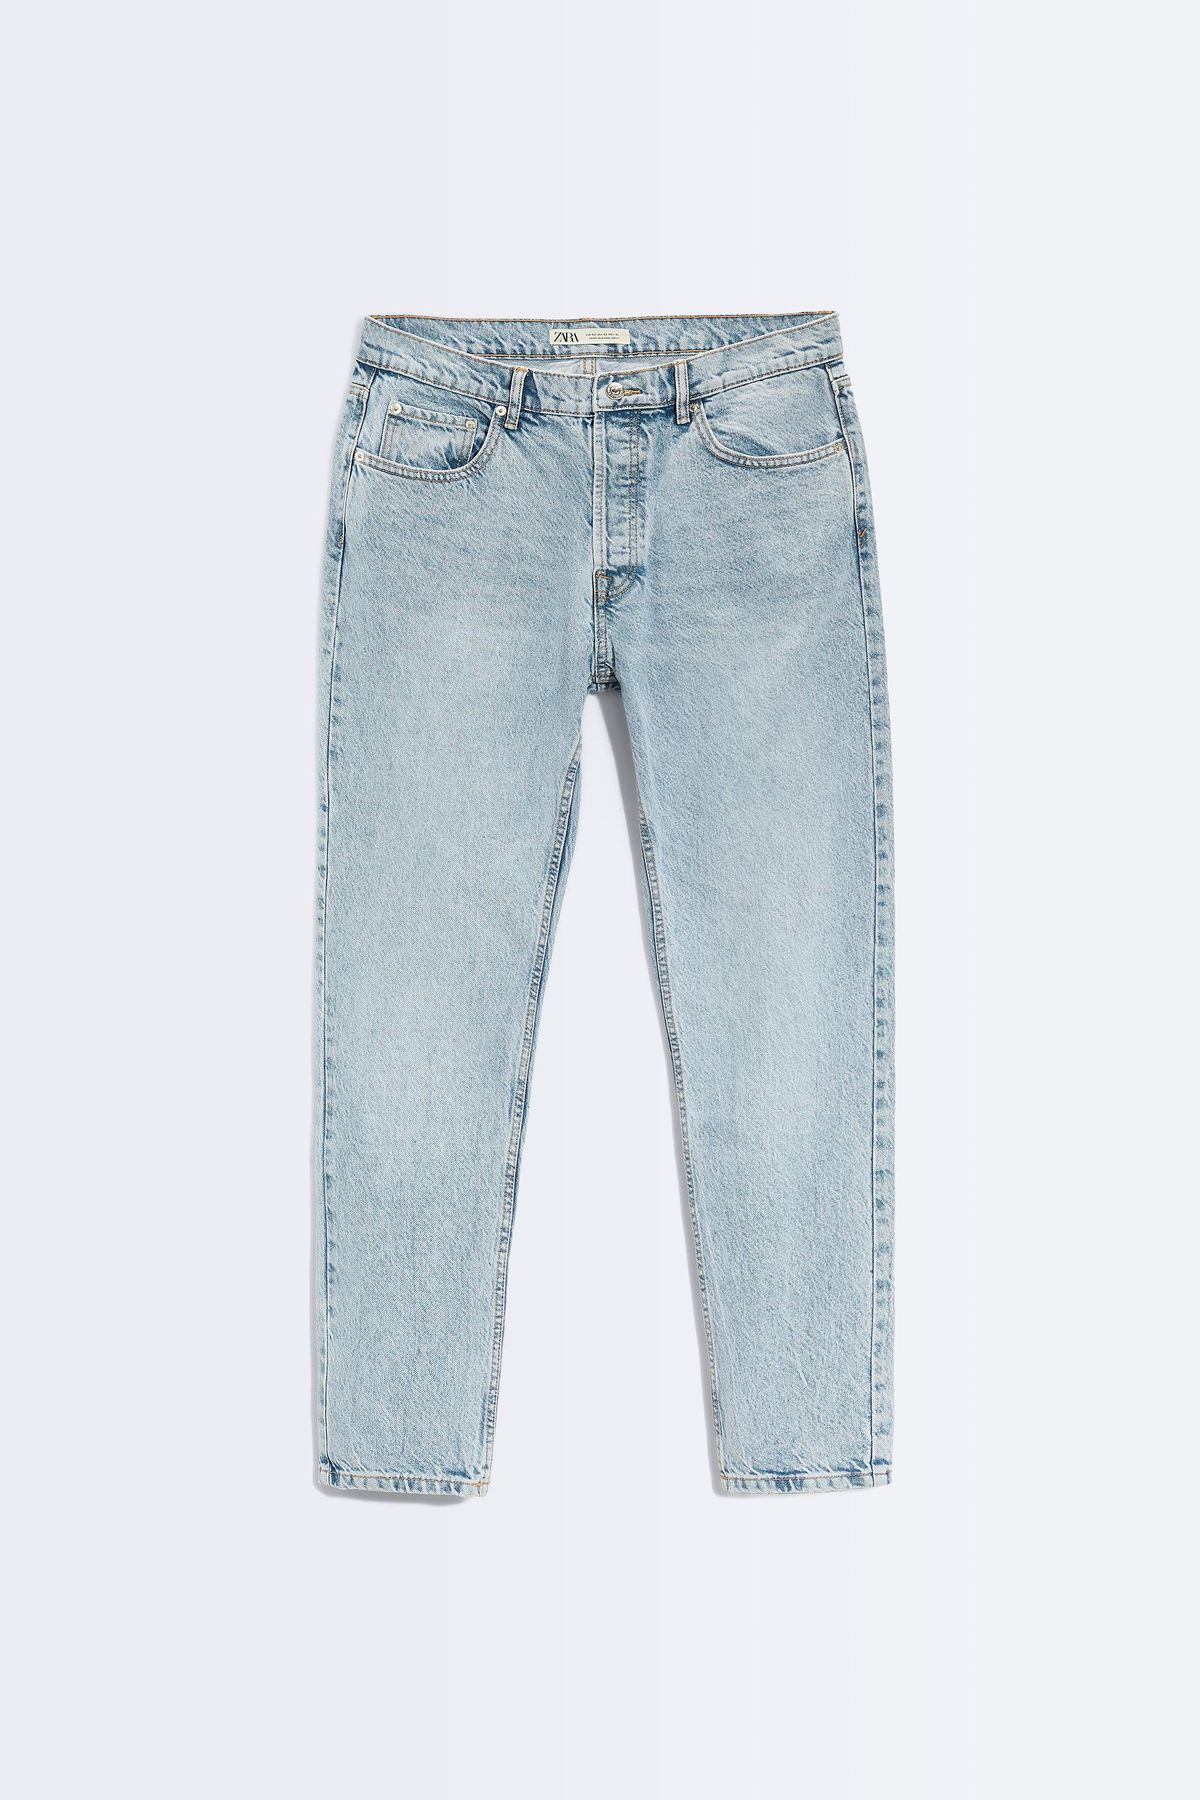 The '90s Slim Fit Jeans